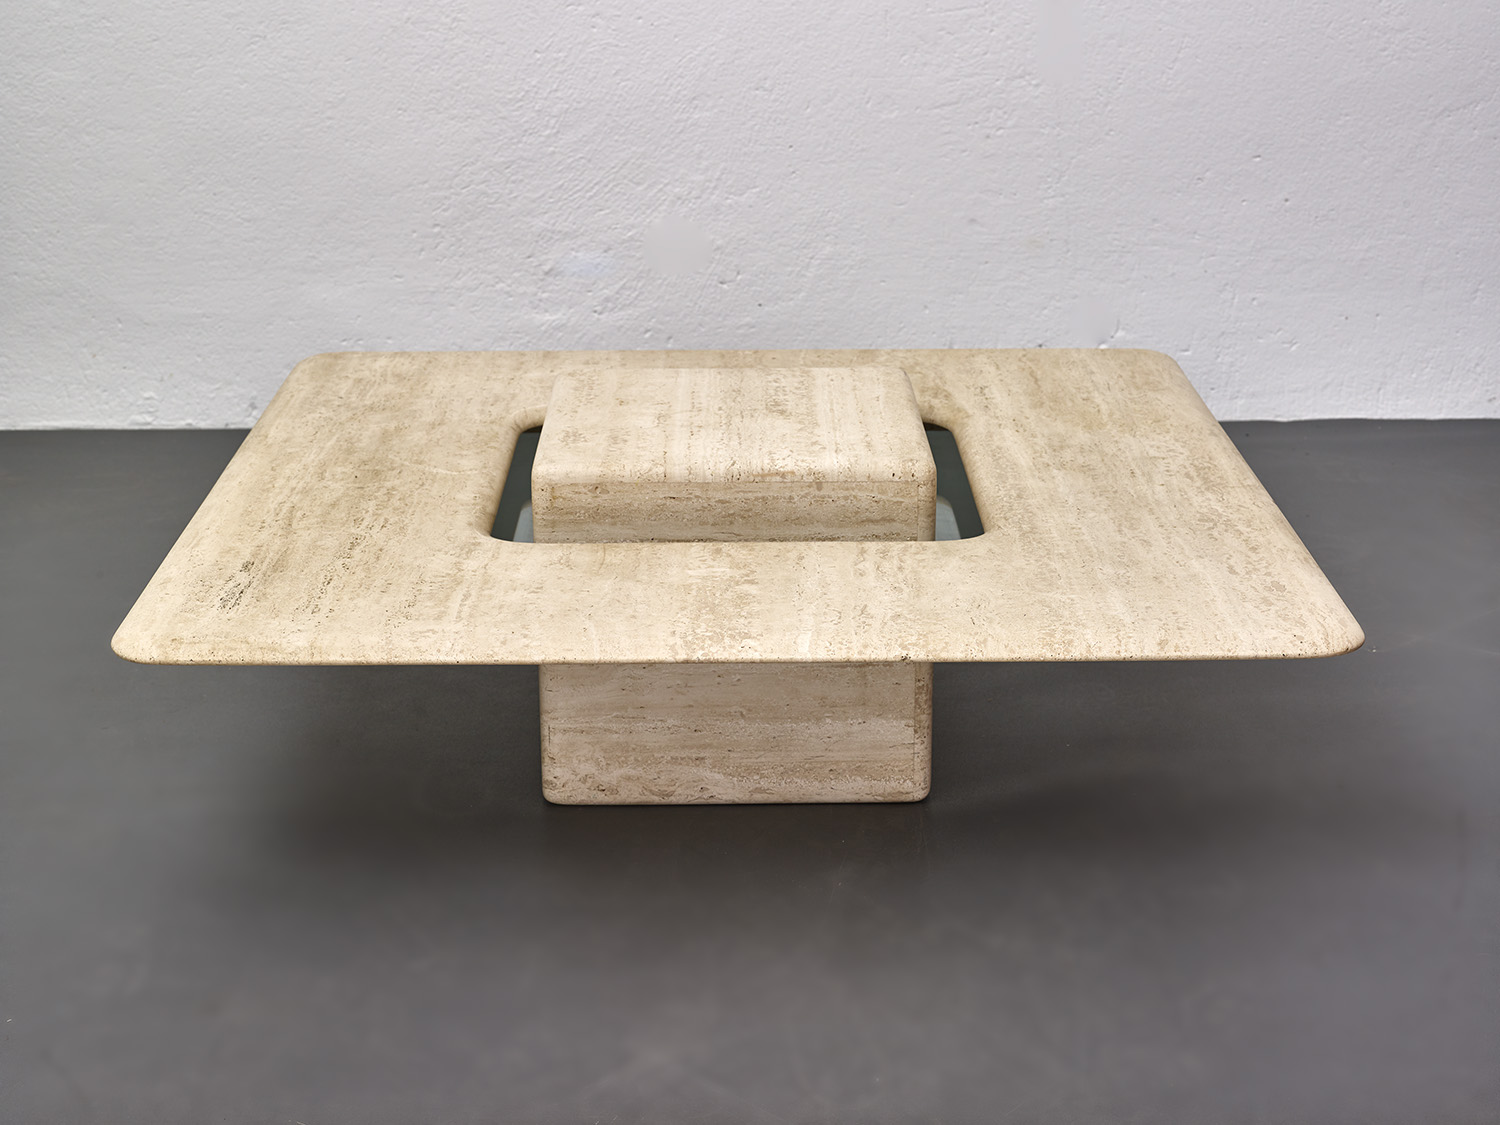 italian-travertine-coffee-table-with-floating-top-1970-1980-image-02